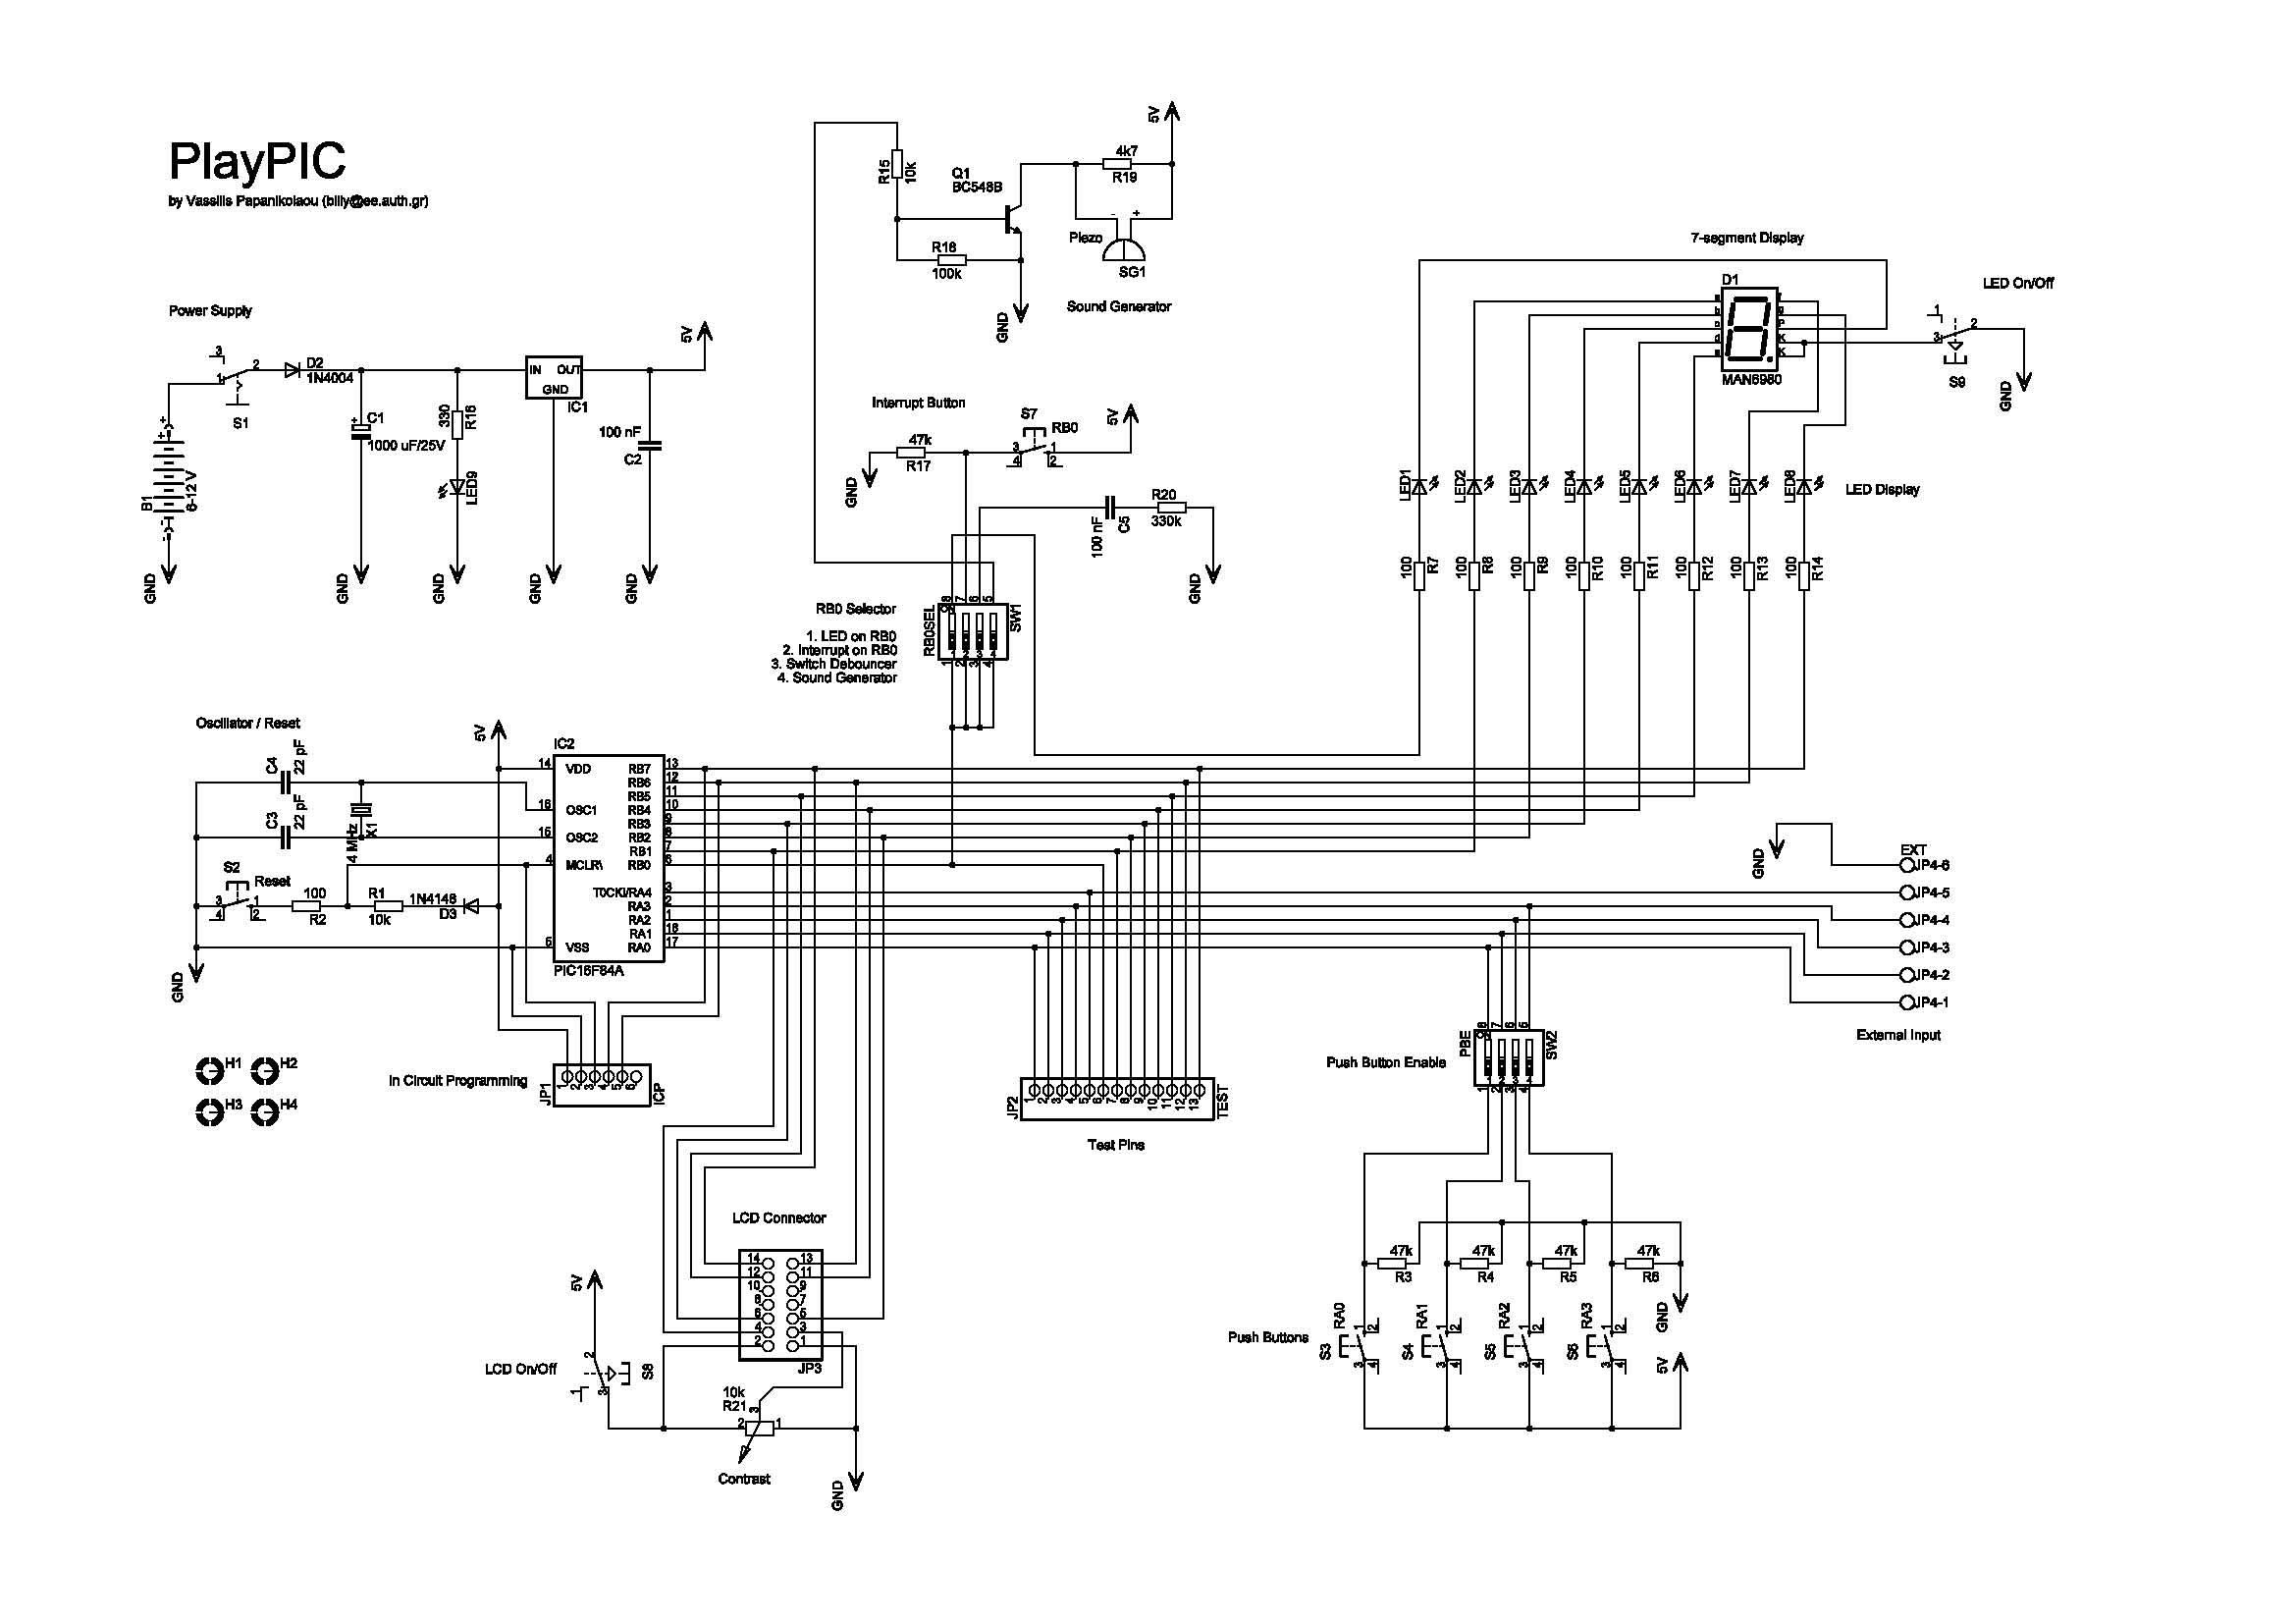 1200 Amp Wiring Diagram For Sony Playpic Electronics Lab